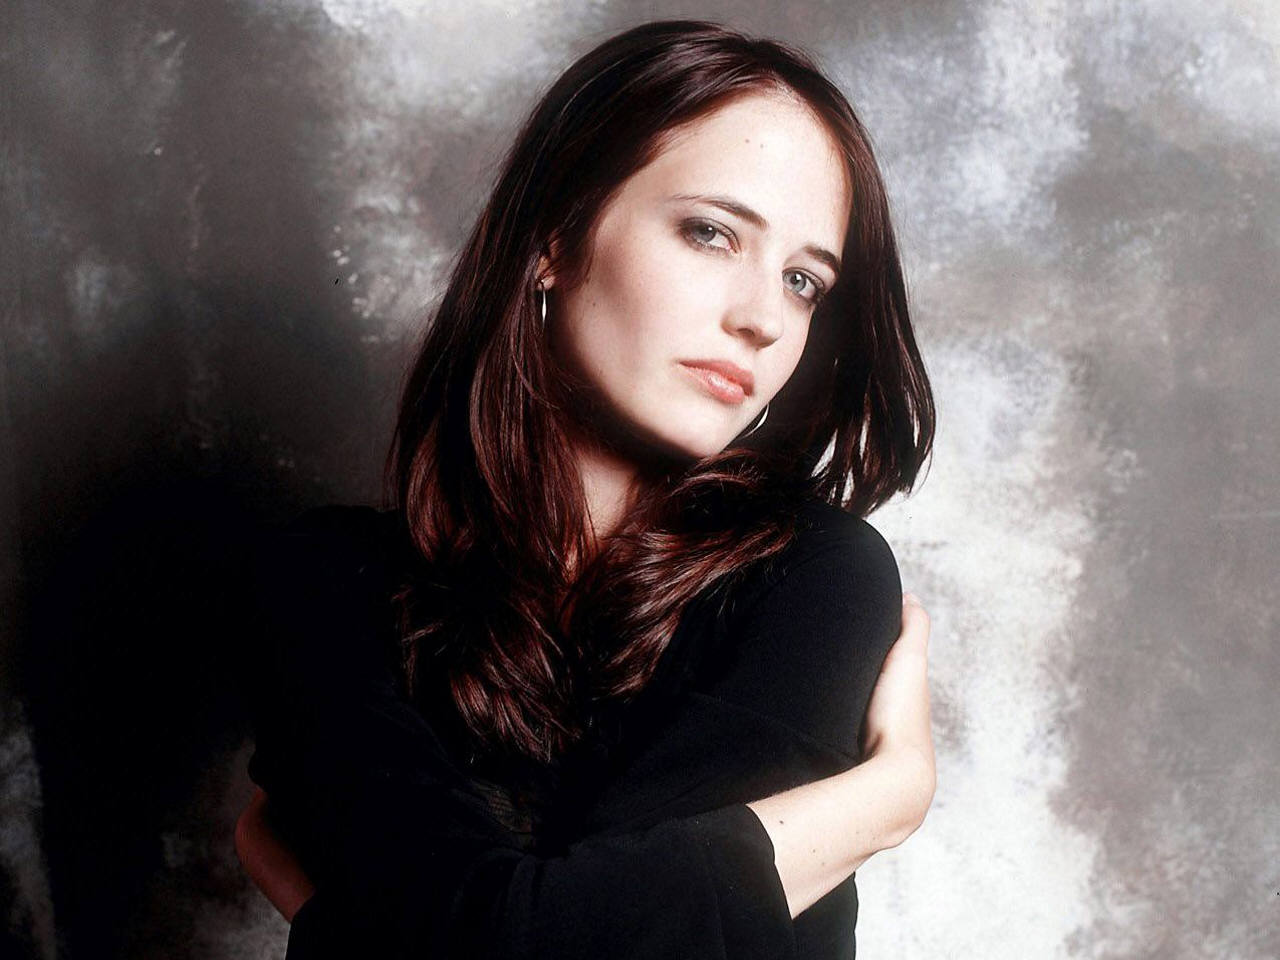 Eva Green Wallpapers, Photos, Pictures and Images ... Eva Green Images